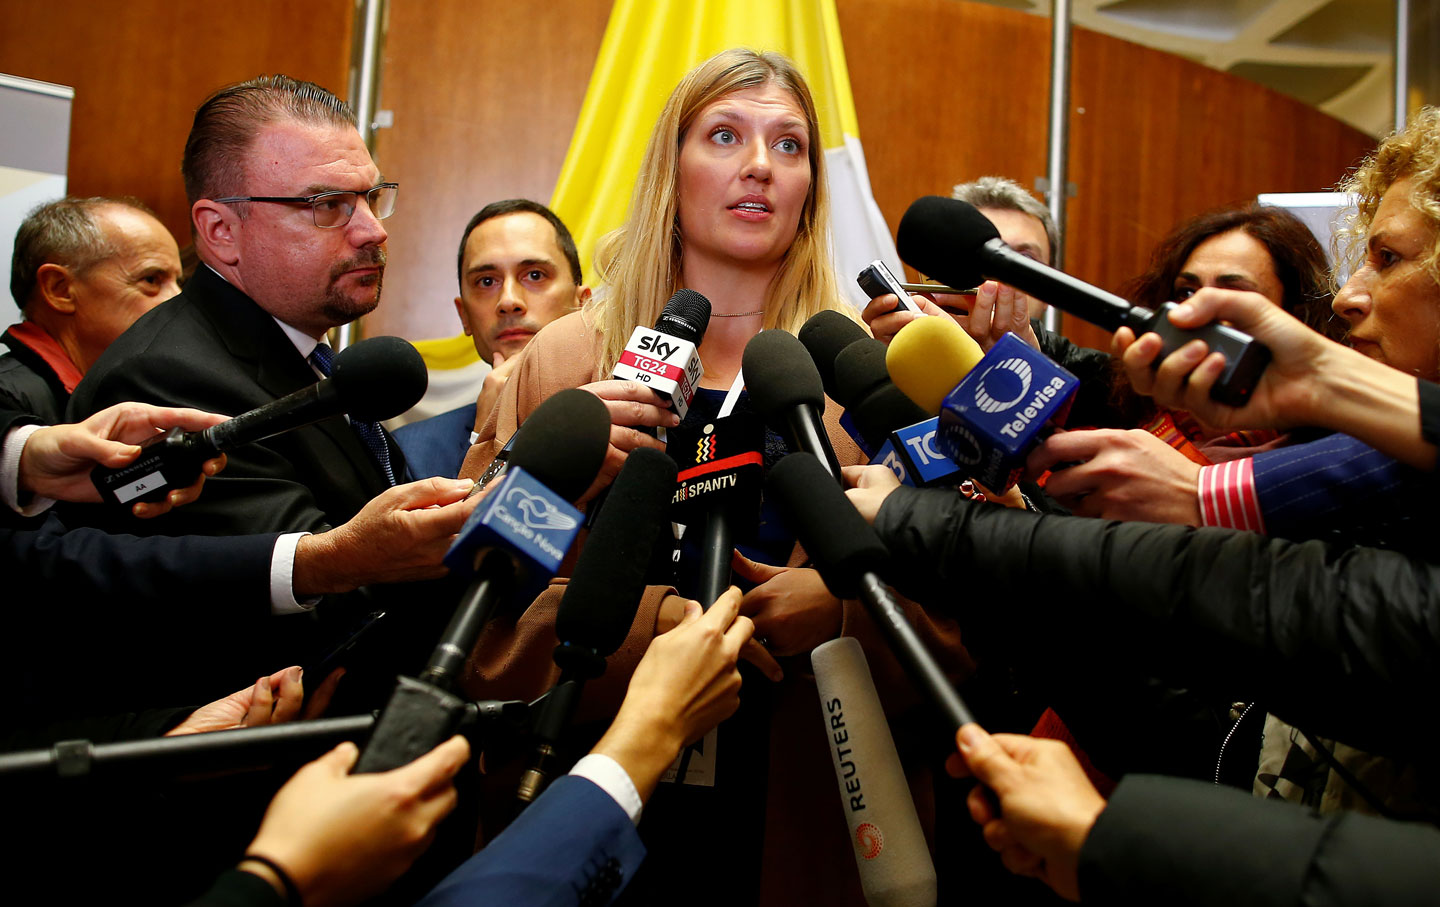 Beatrice Fihn, Executive Director of the International Campaign to Abolish Nuclear Weapons